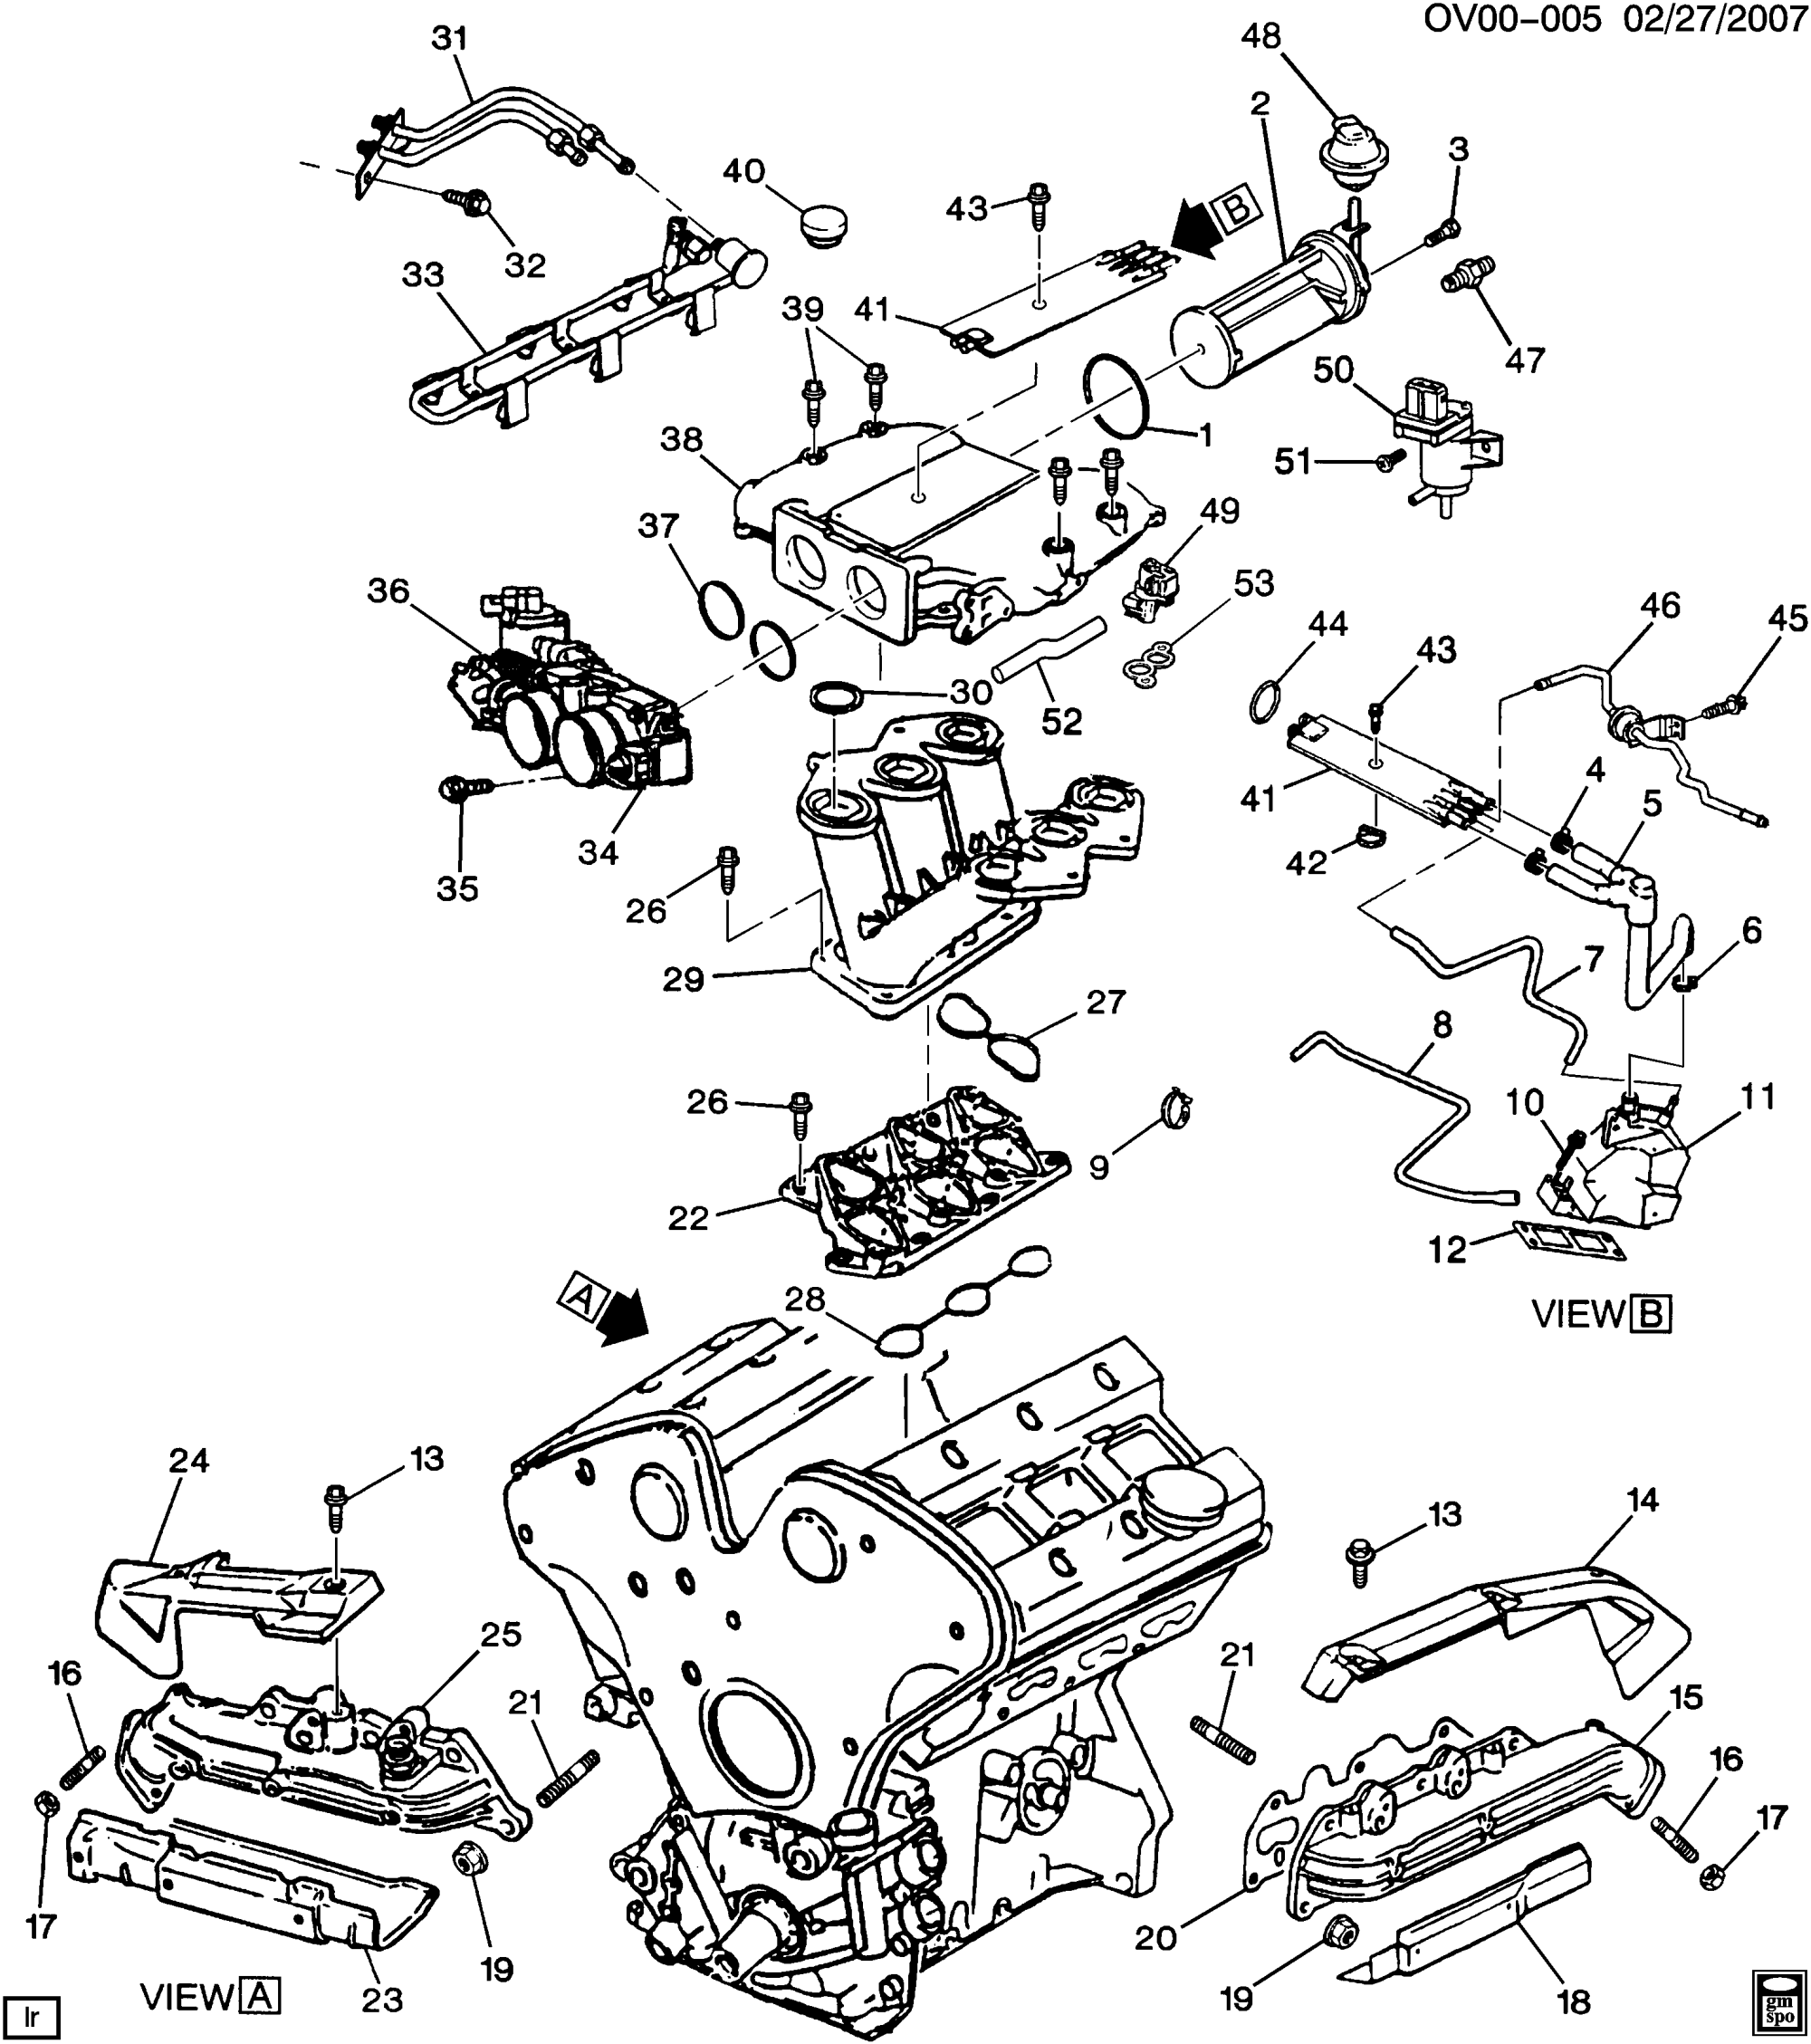 hight resolution of cadillac catera 3 0 engine diagram wiring diagram expert cadillac catera 3 0 engine diagram